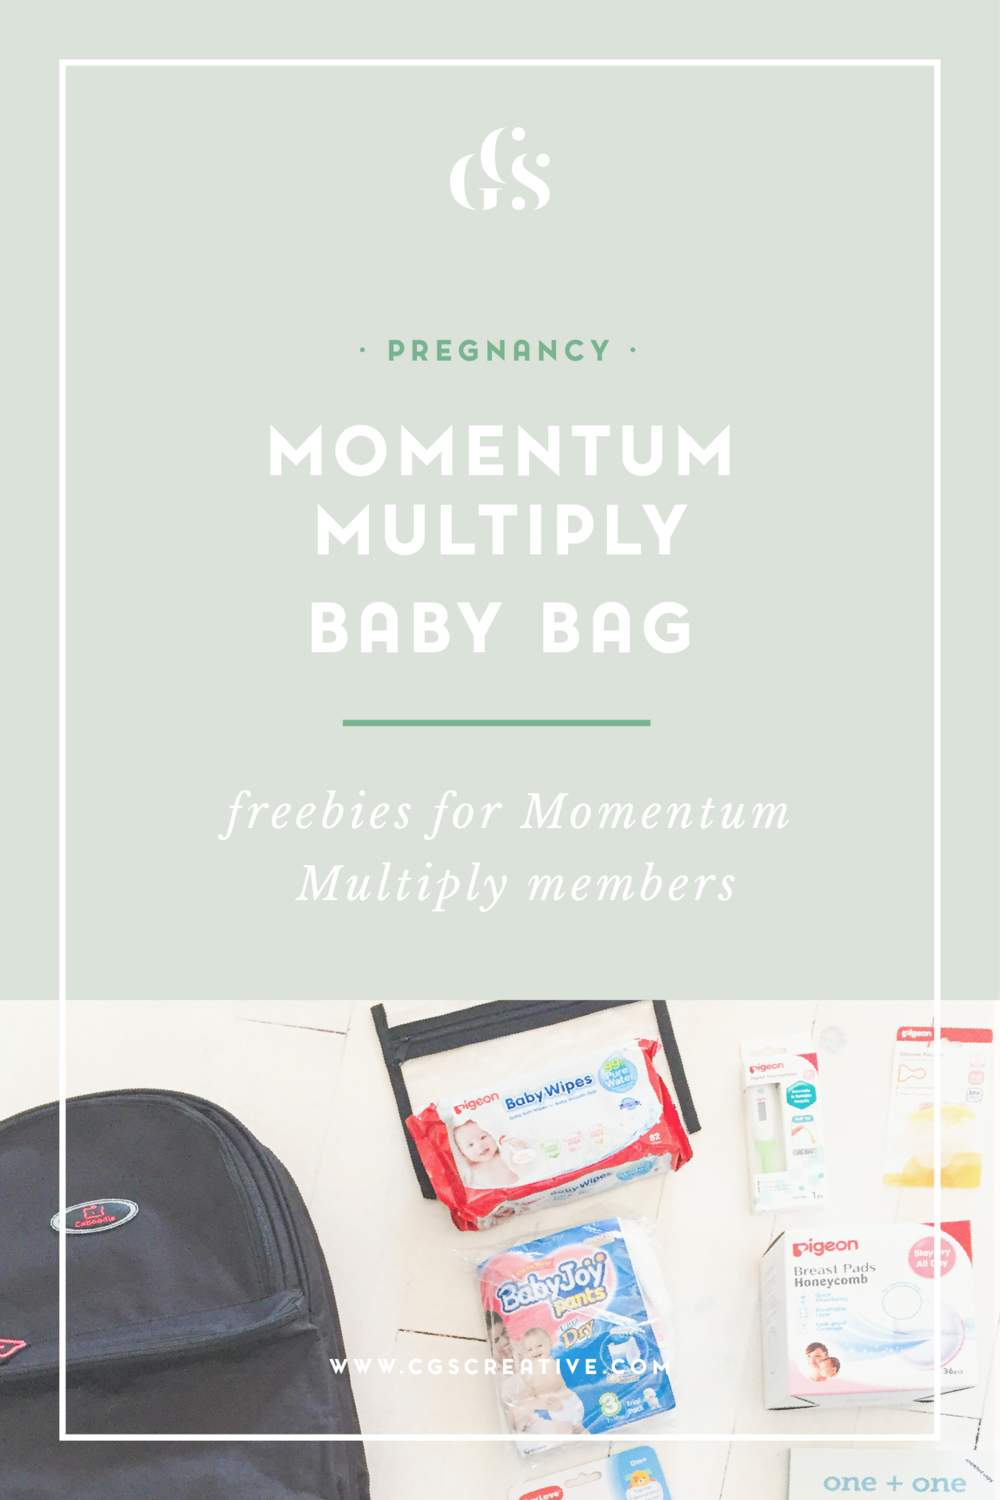 Momentum Multiple Baby Bag Freebies for members CityGirlSearching Blog-01.png